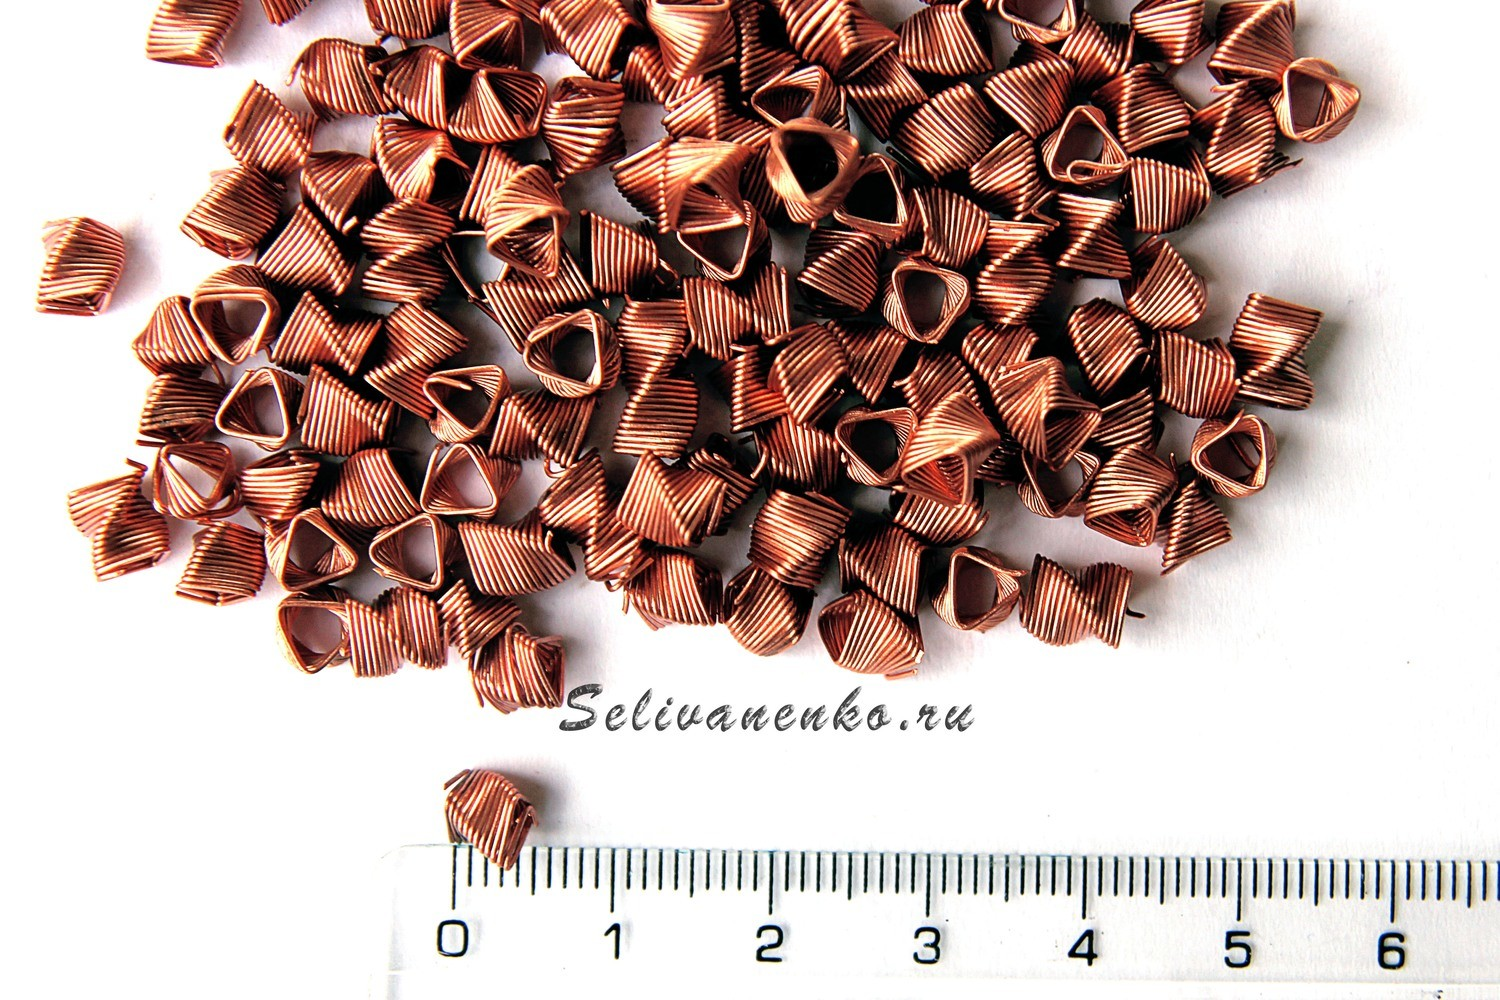 Spiral prismatic packing (SPP) SELIVANENKO. Material: Copper. Volume: 0.1 L